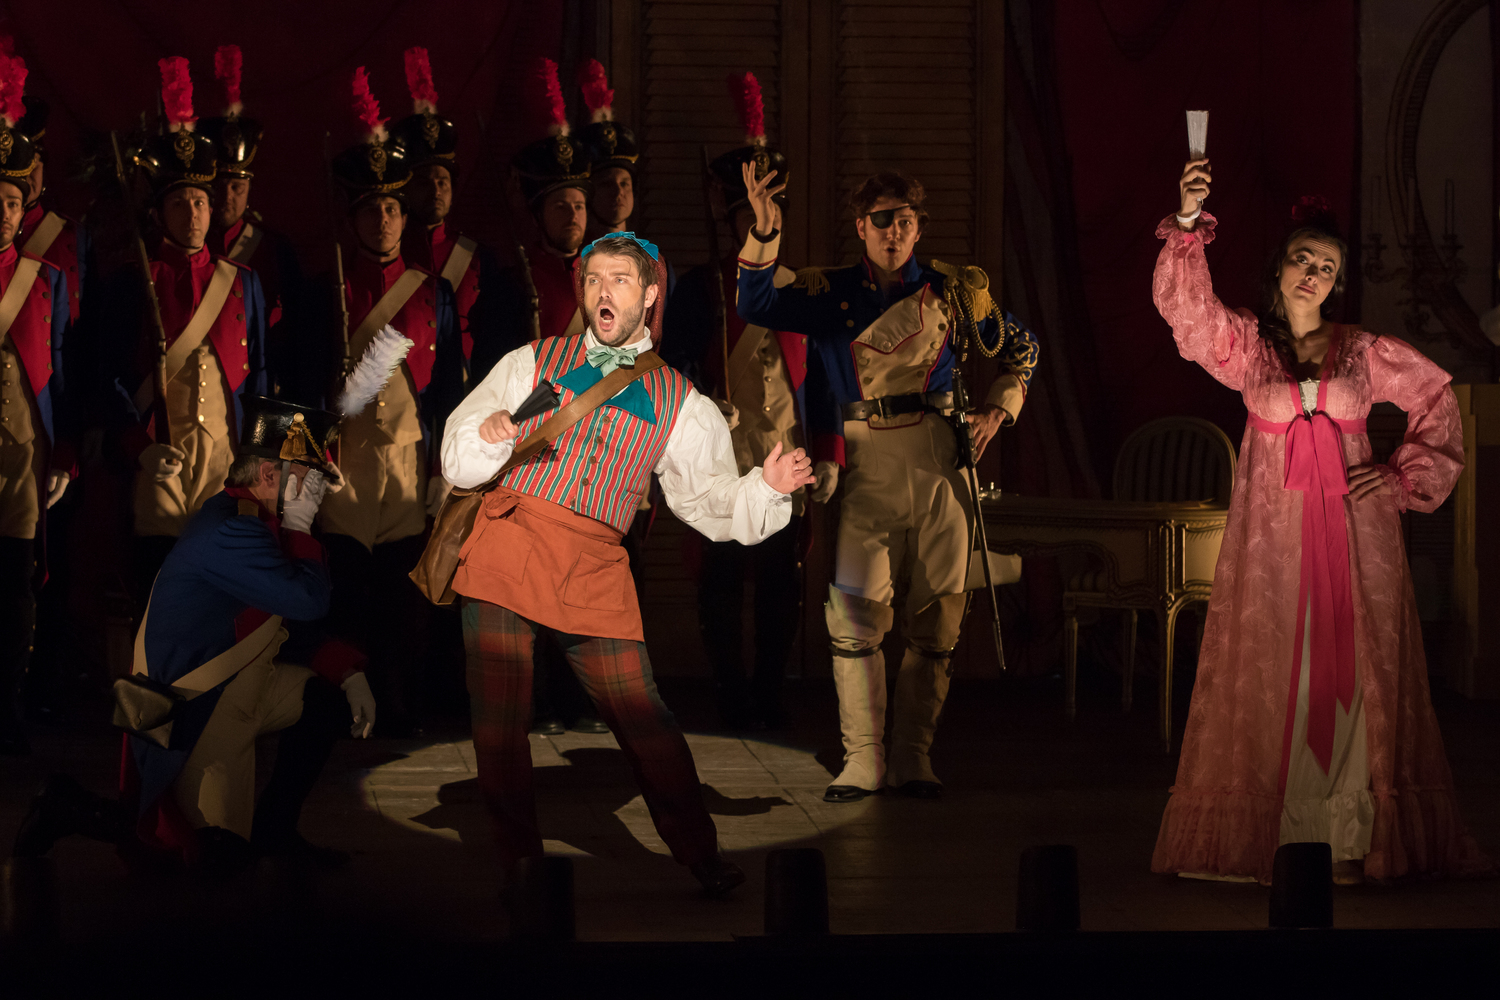 BWW Review: WASHINGTON NATIONAL OPERA: THE BARBER OF SEVILLE at Kennedy Center